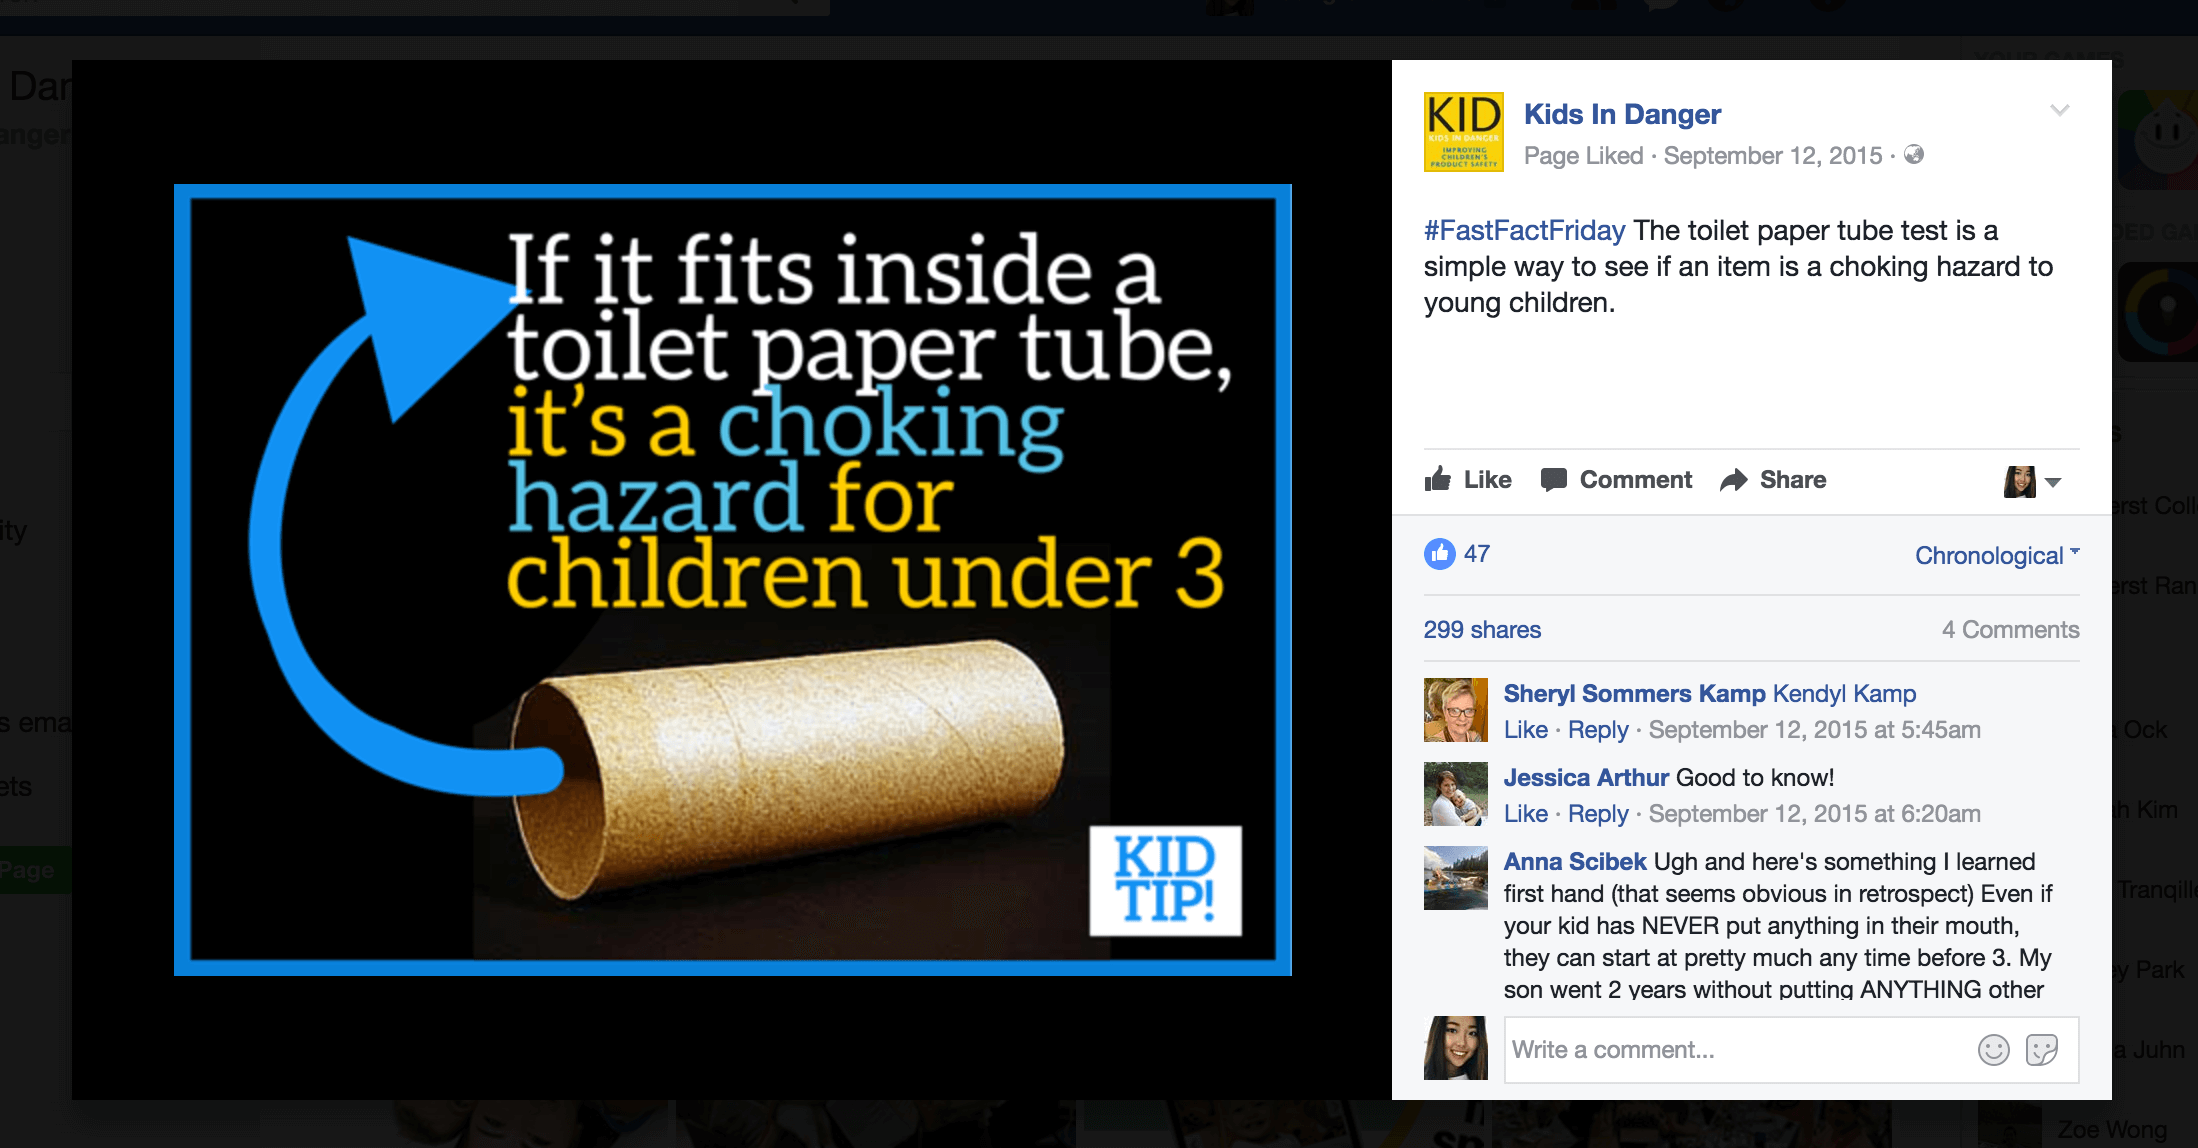 One post I designed received almost 300 shares and reached 30,000 people, making it one of the most successful posts in KID history.